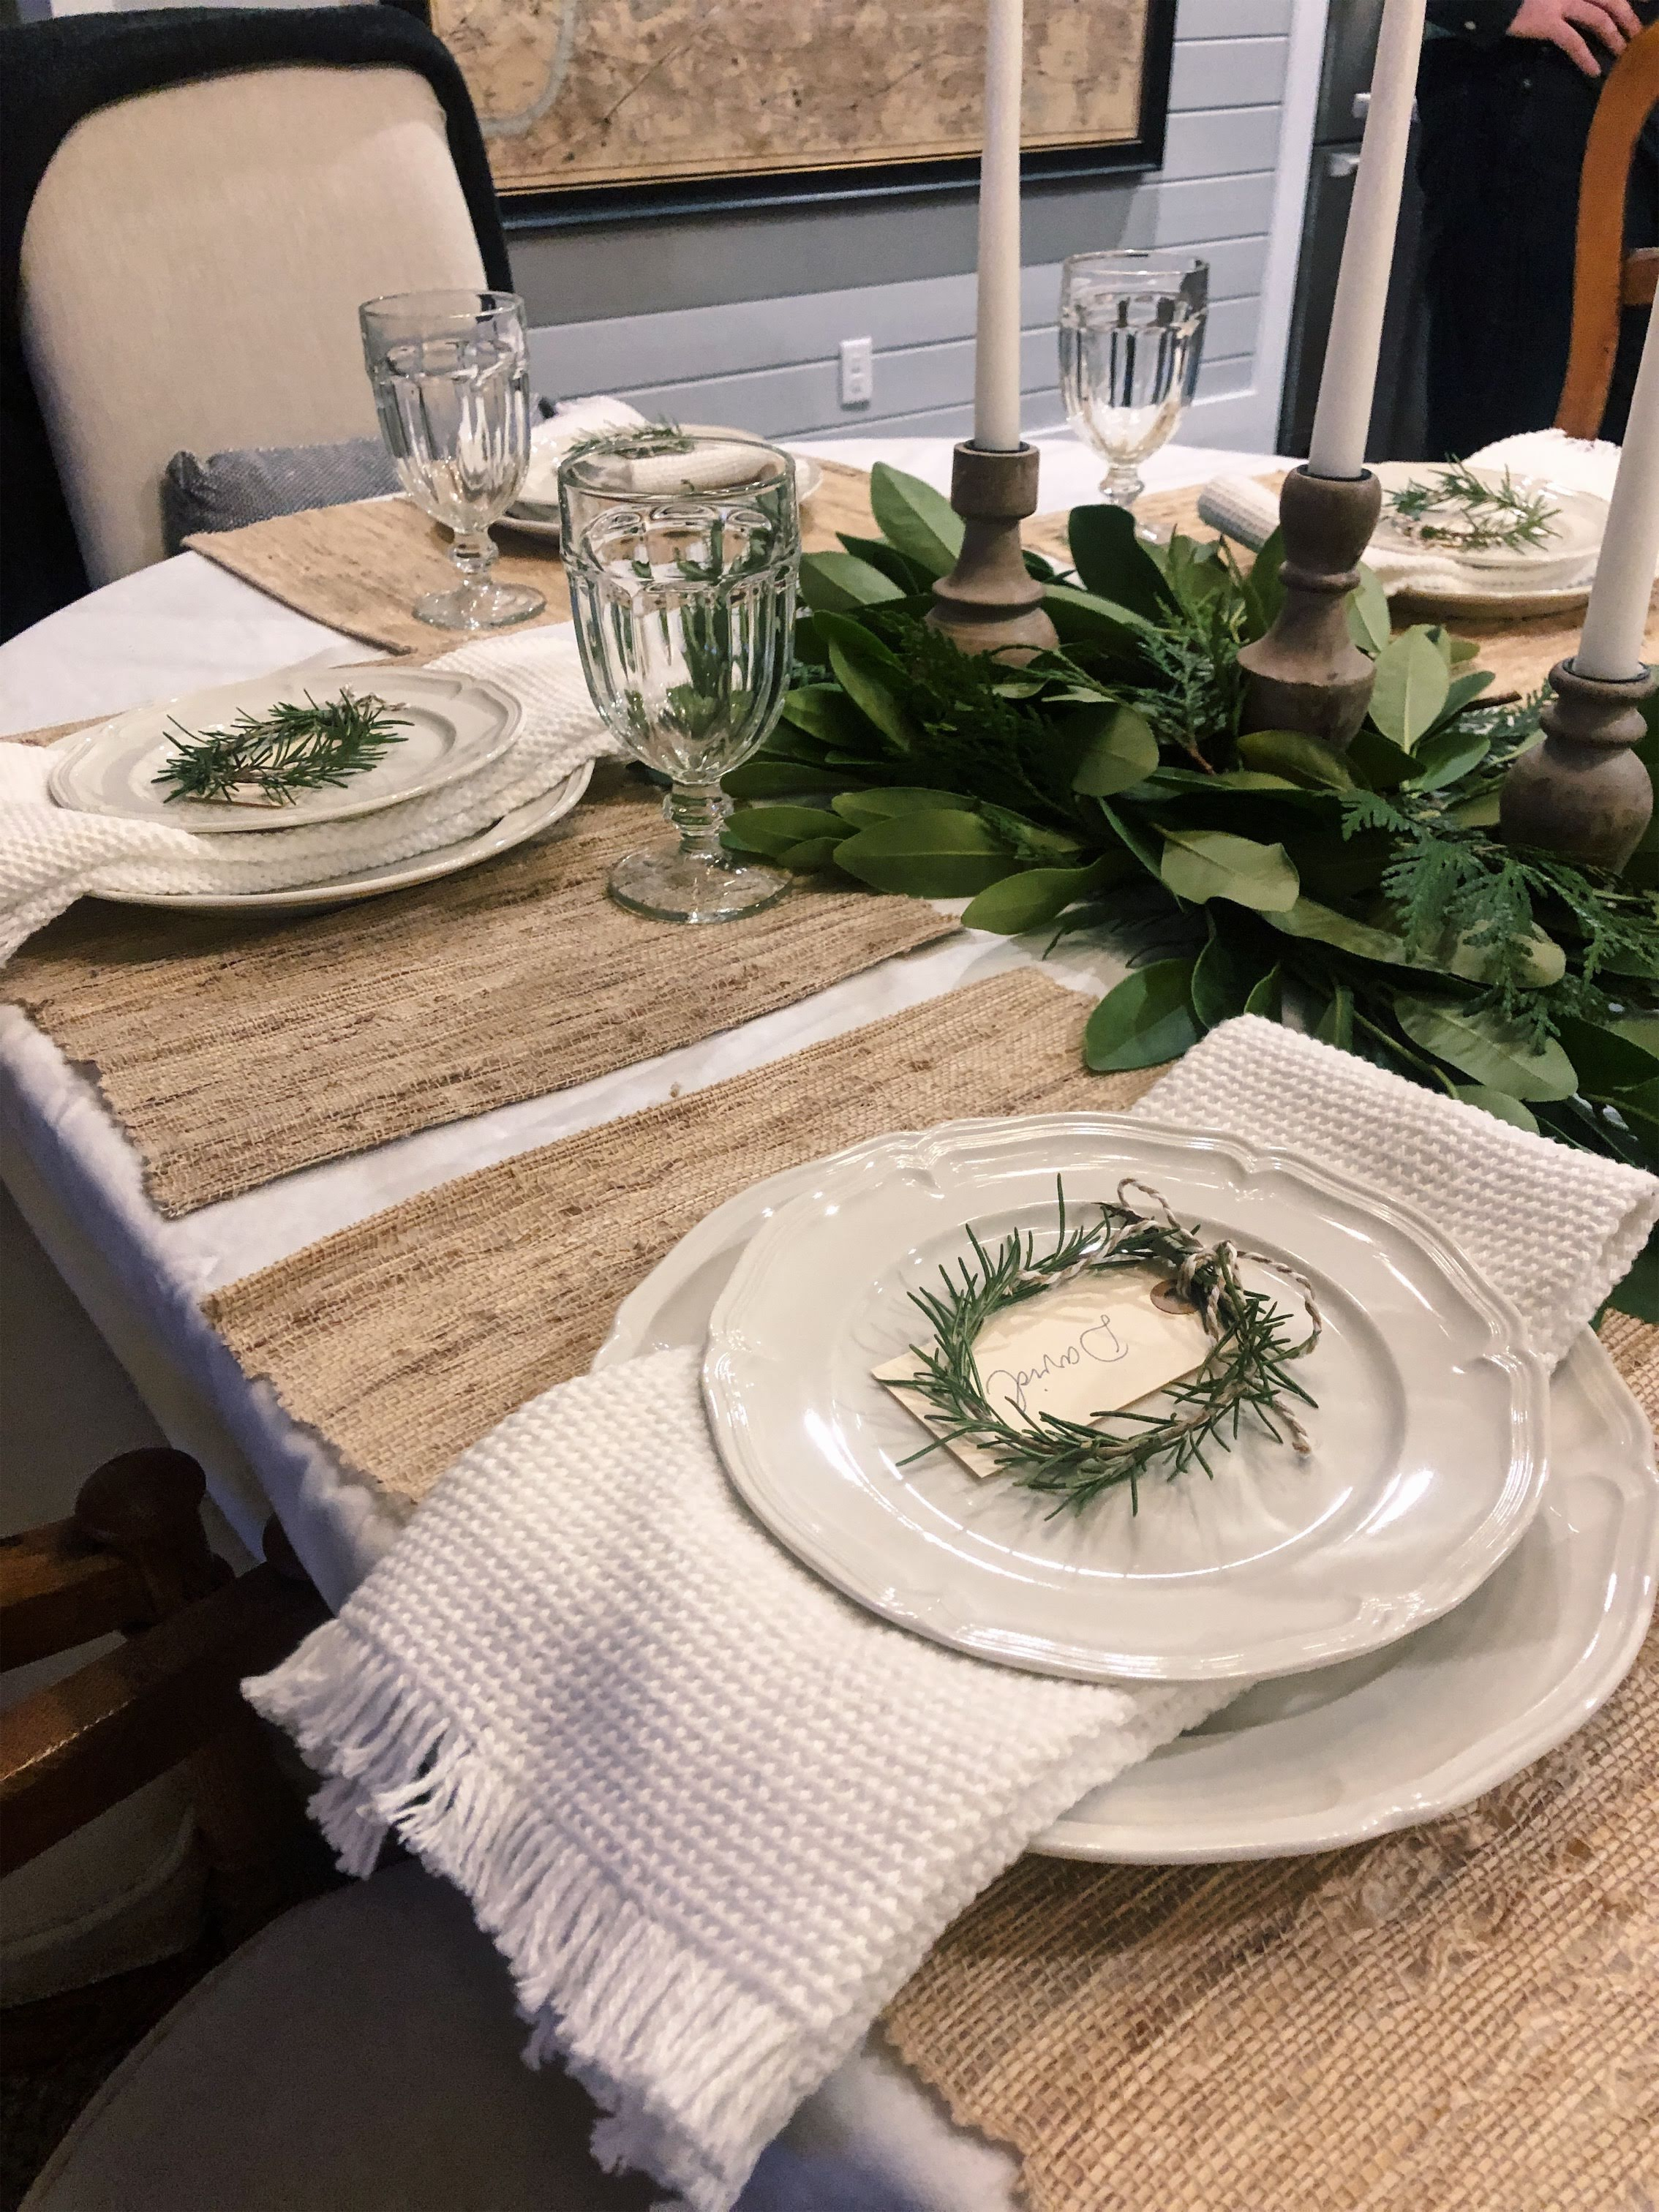 You can't forget to add some kd weave (s) to make your dinner party a success! Here, we used white hand towels as dinner napkins to add some texture to the table. Really love how it all turned out!